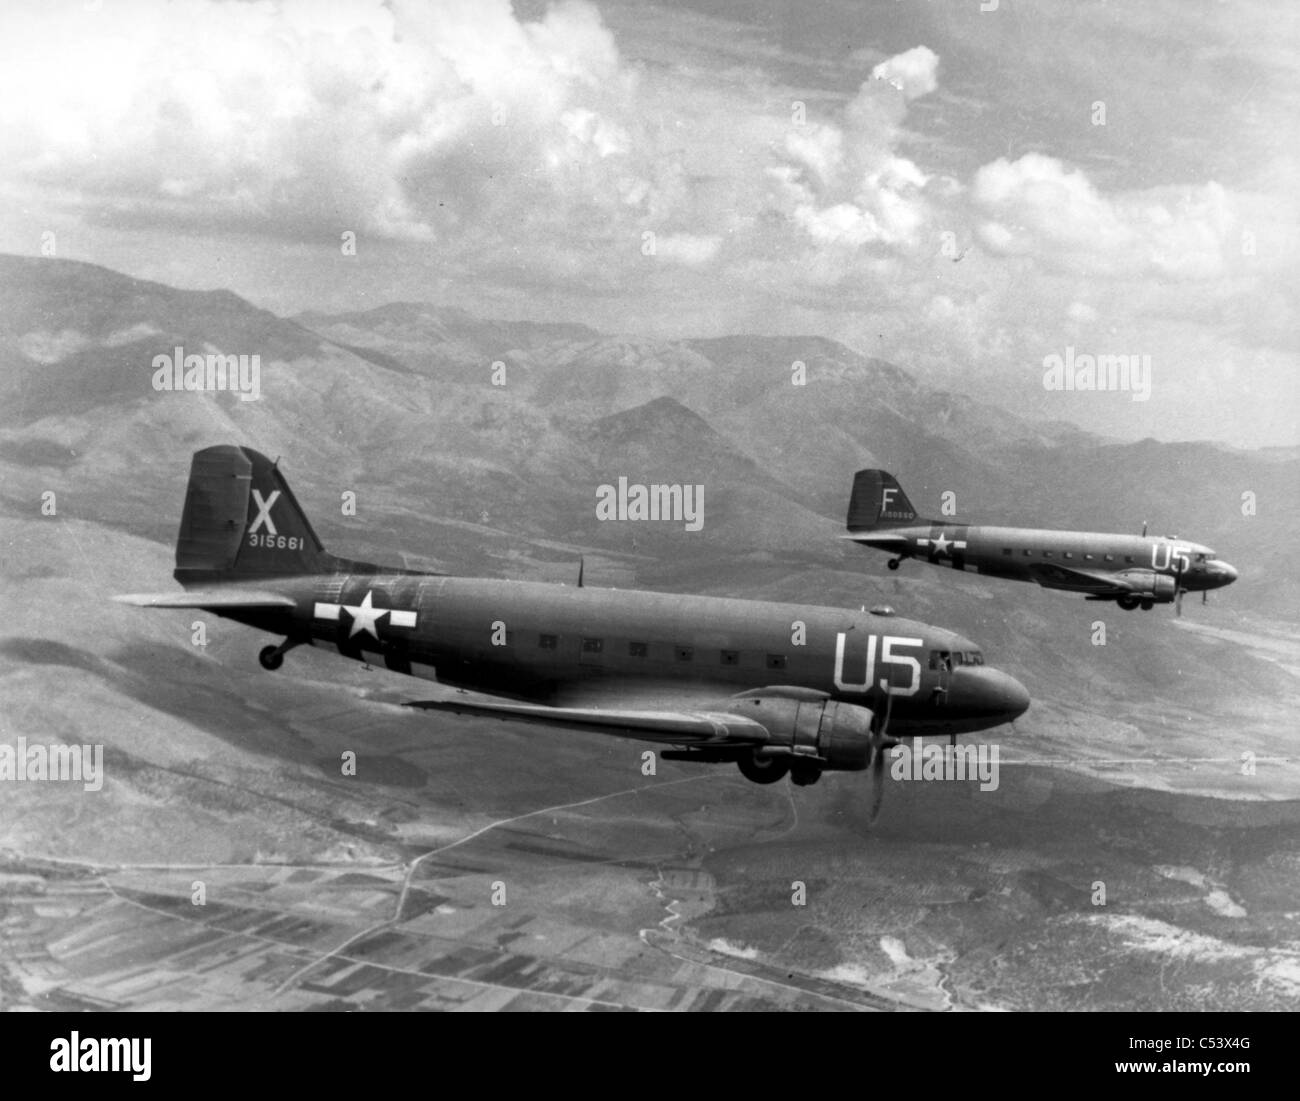 DOUGLAS DC-3s (Dakotas) of the US Army Airforce - Stock Image